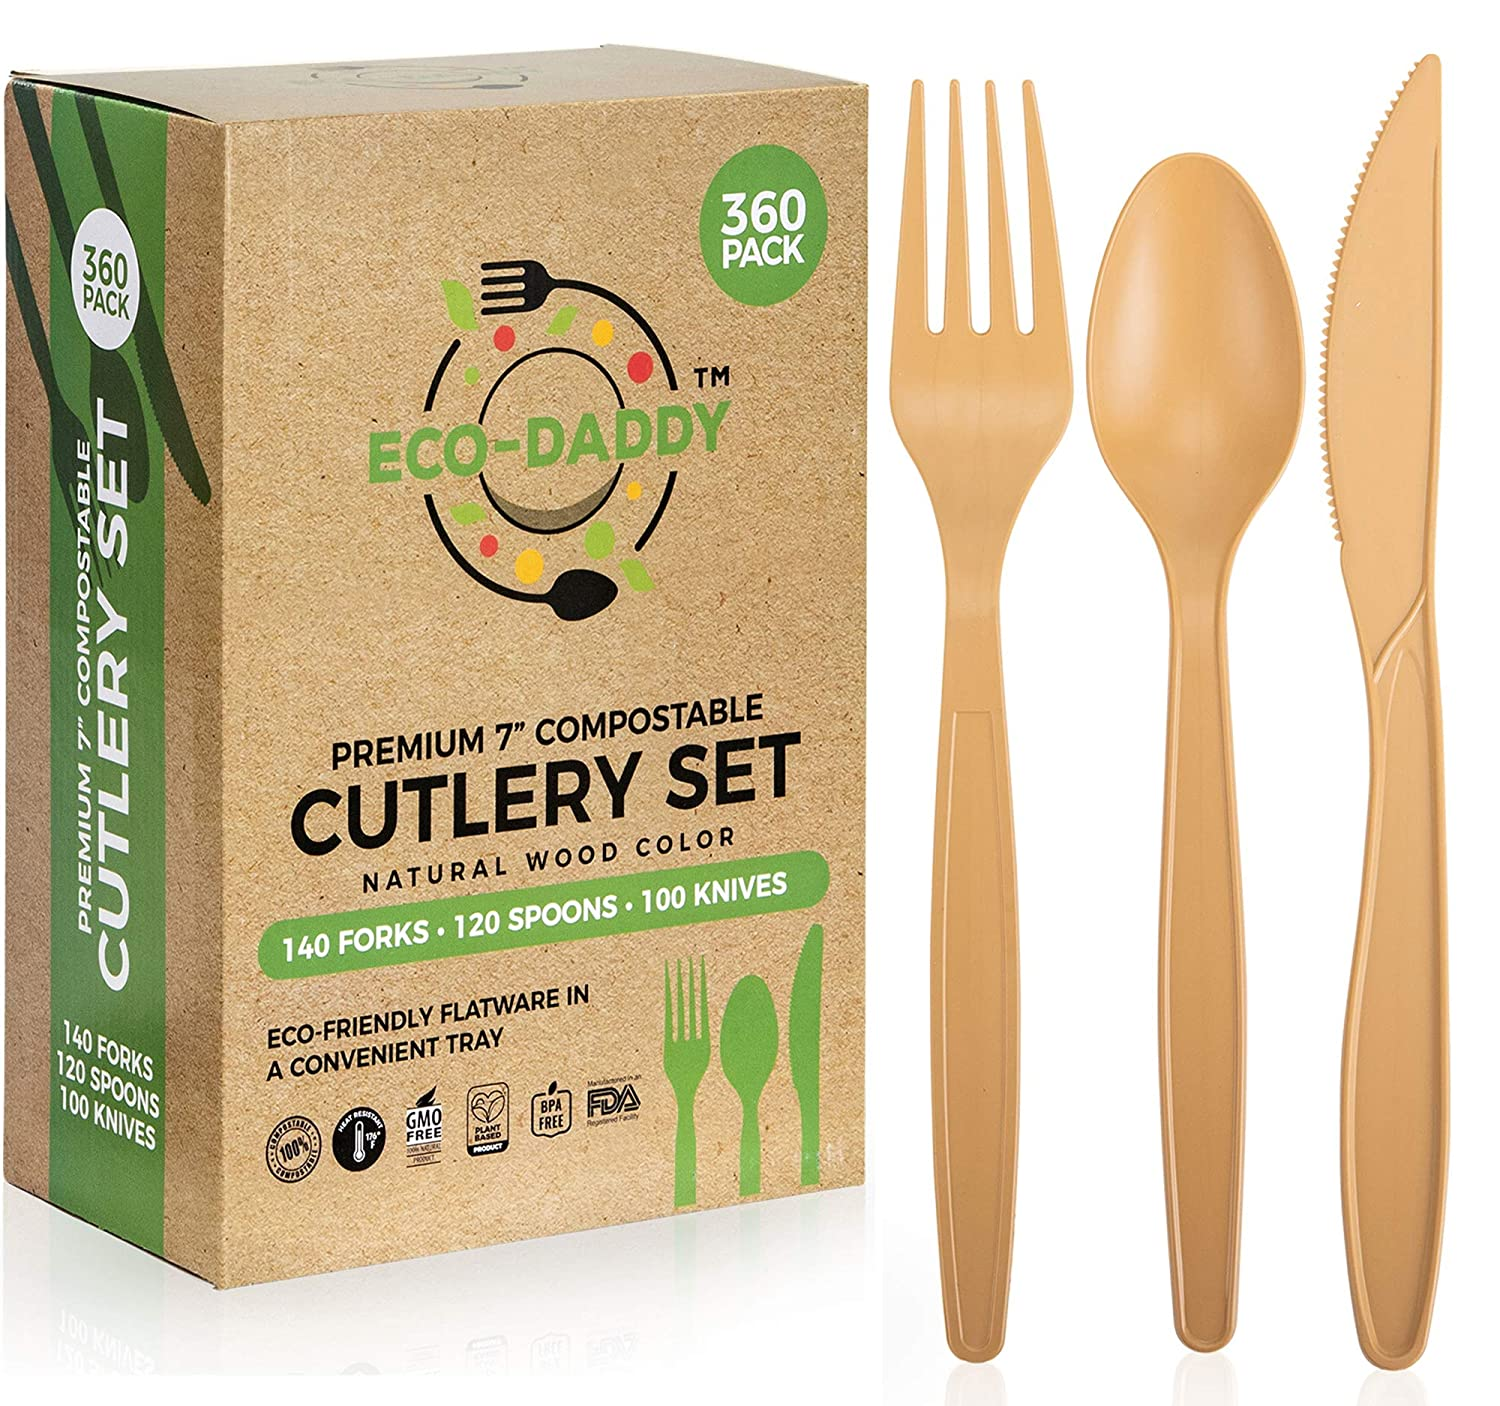 Eco-Daddy - Disposable Compostable Cutlery Set 360 Pack - Large Premium 7-inch - Heavy Duty - Forks Knives Spoons in a Serving Tray - Natural Wood Color Utensils - Plant Based Biodegradable Flatware